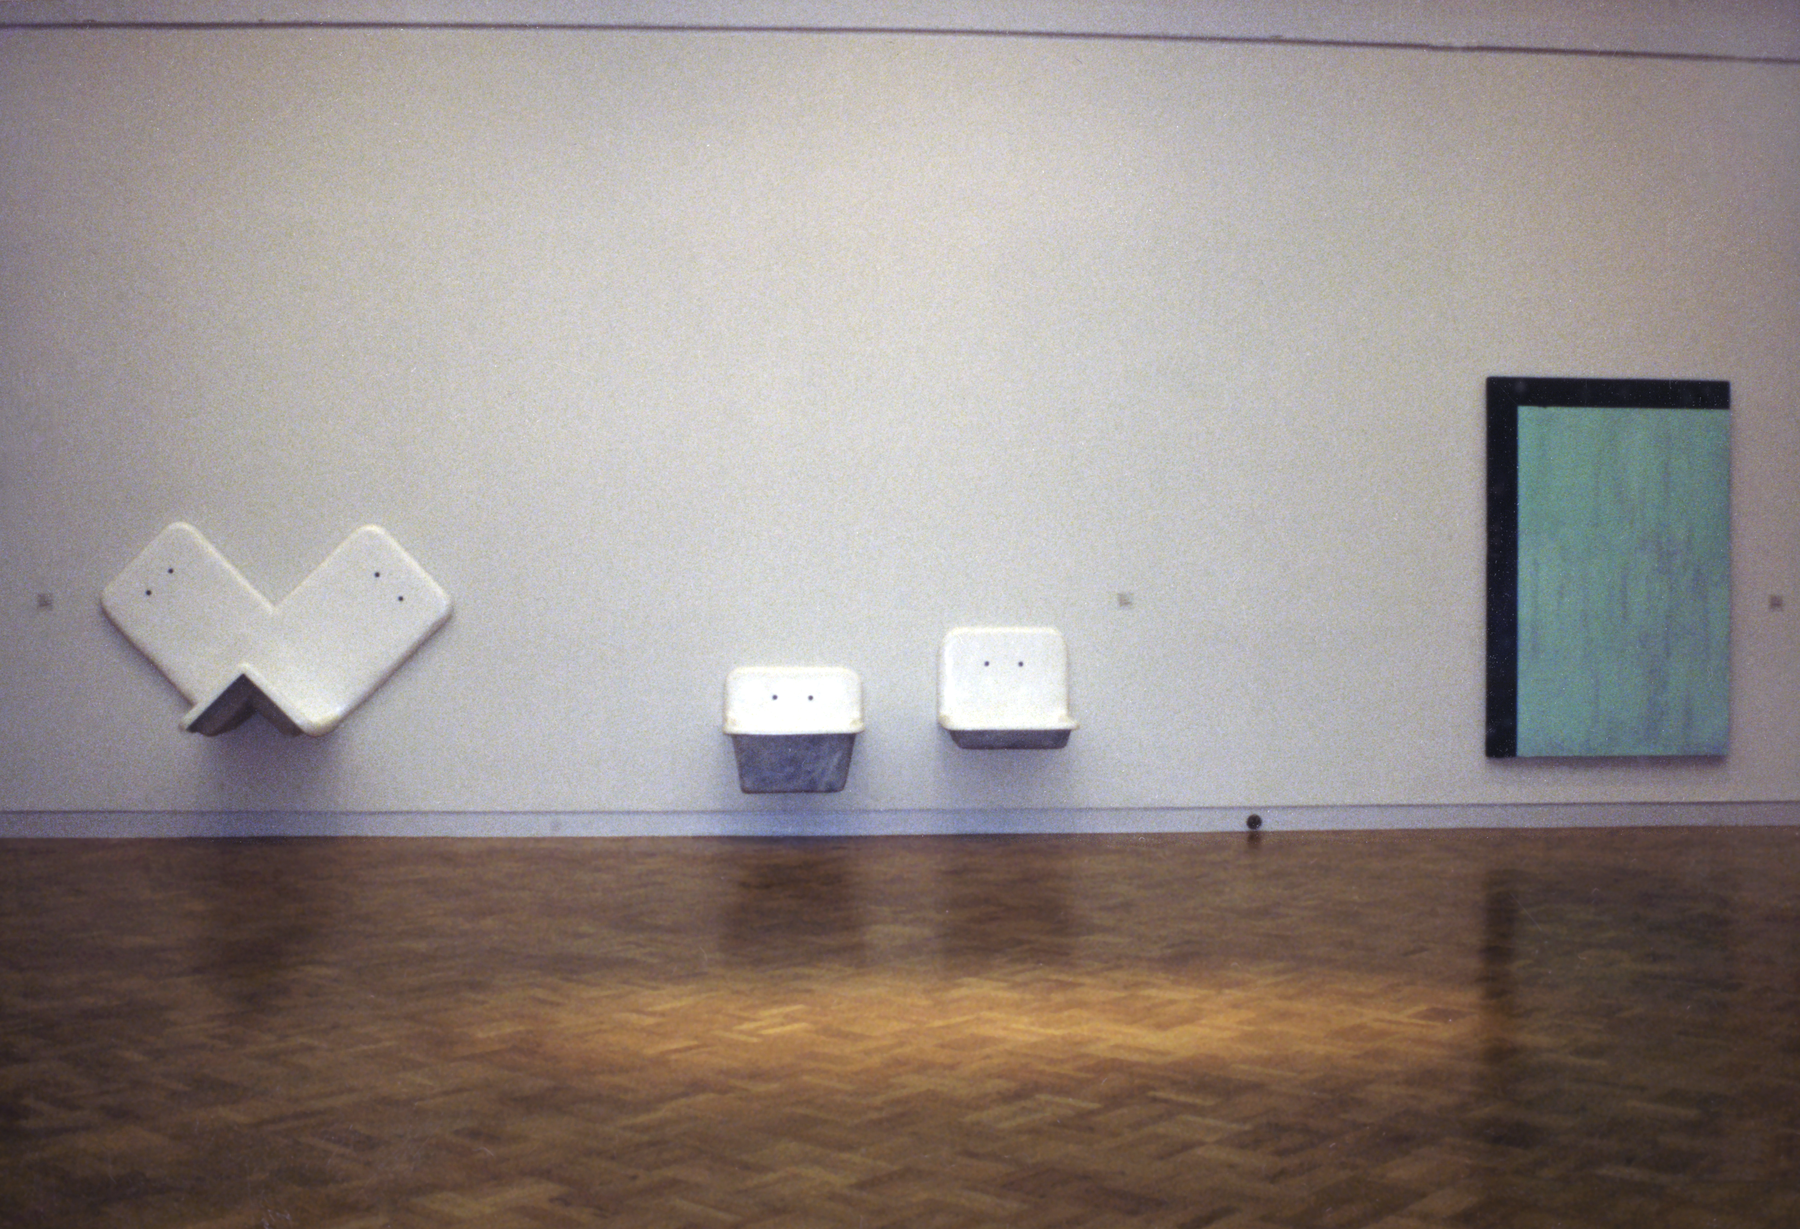 White, sink-like porcelain sculptures hang on a wall next to a large painting featuring a textured blue block and a black border around half.